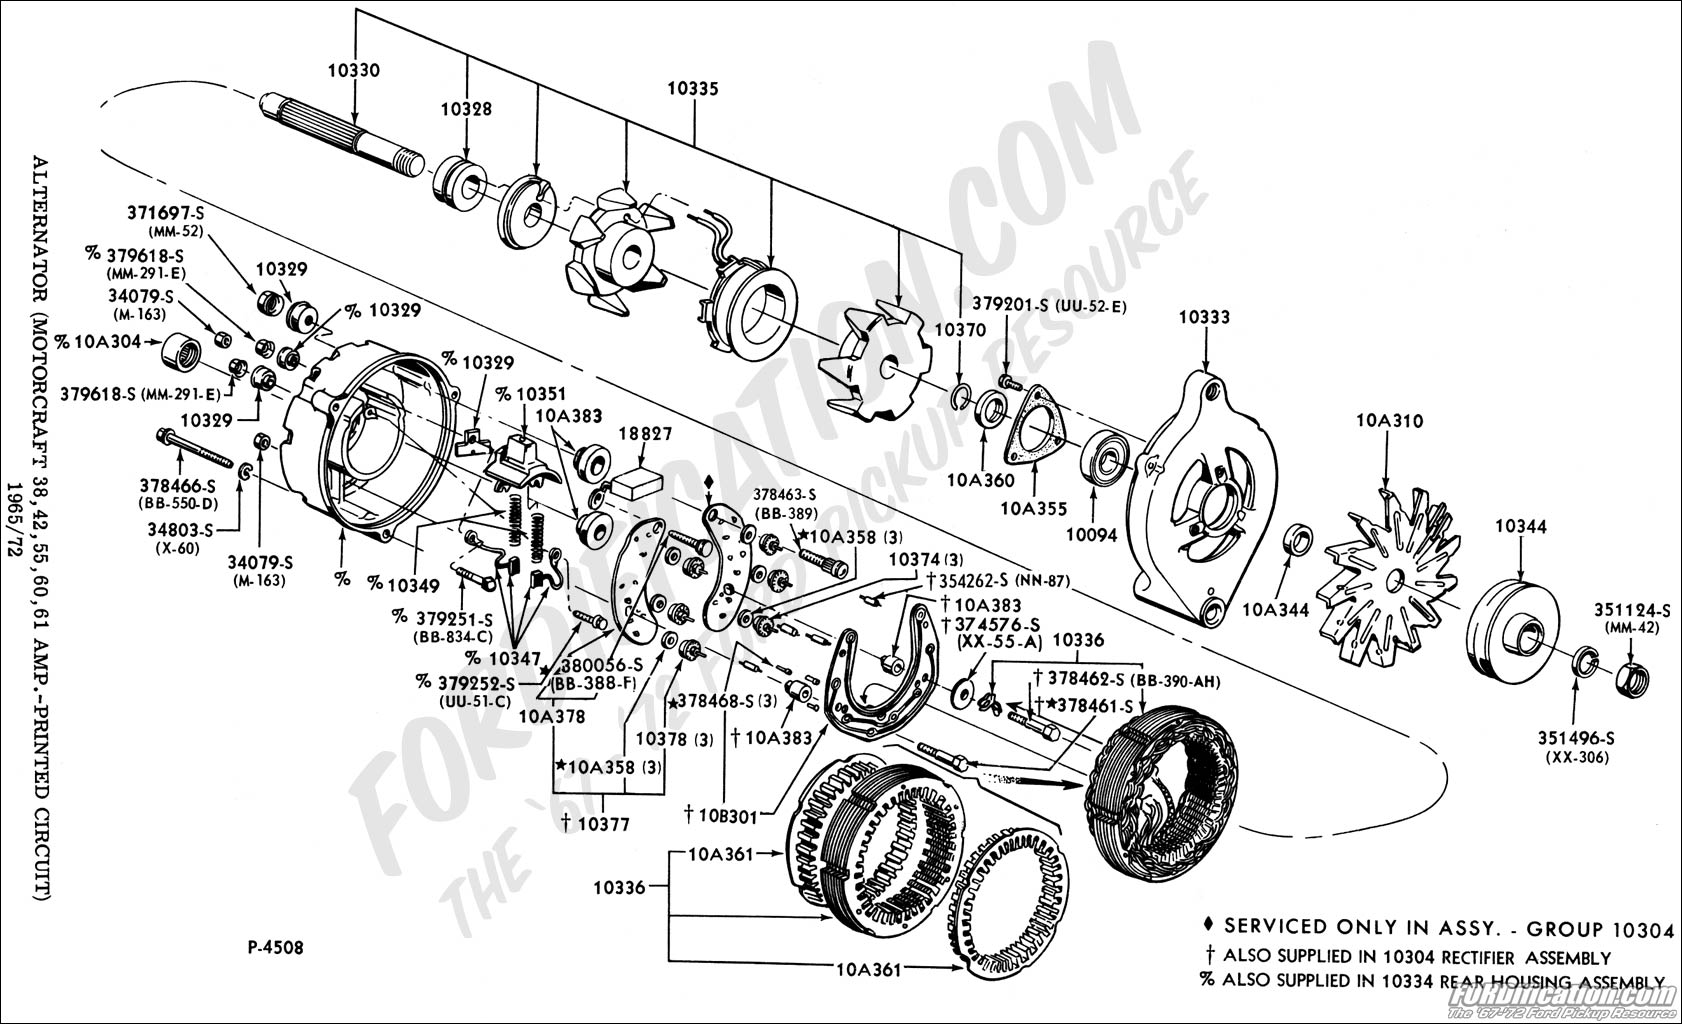 6 Volt Flasher 3 Prong Wiring Diagram